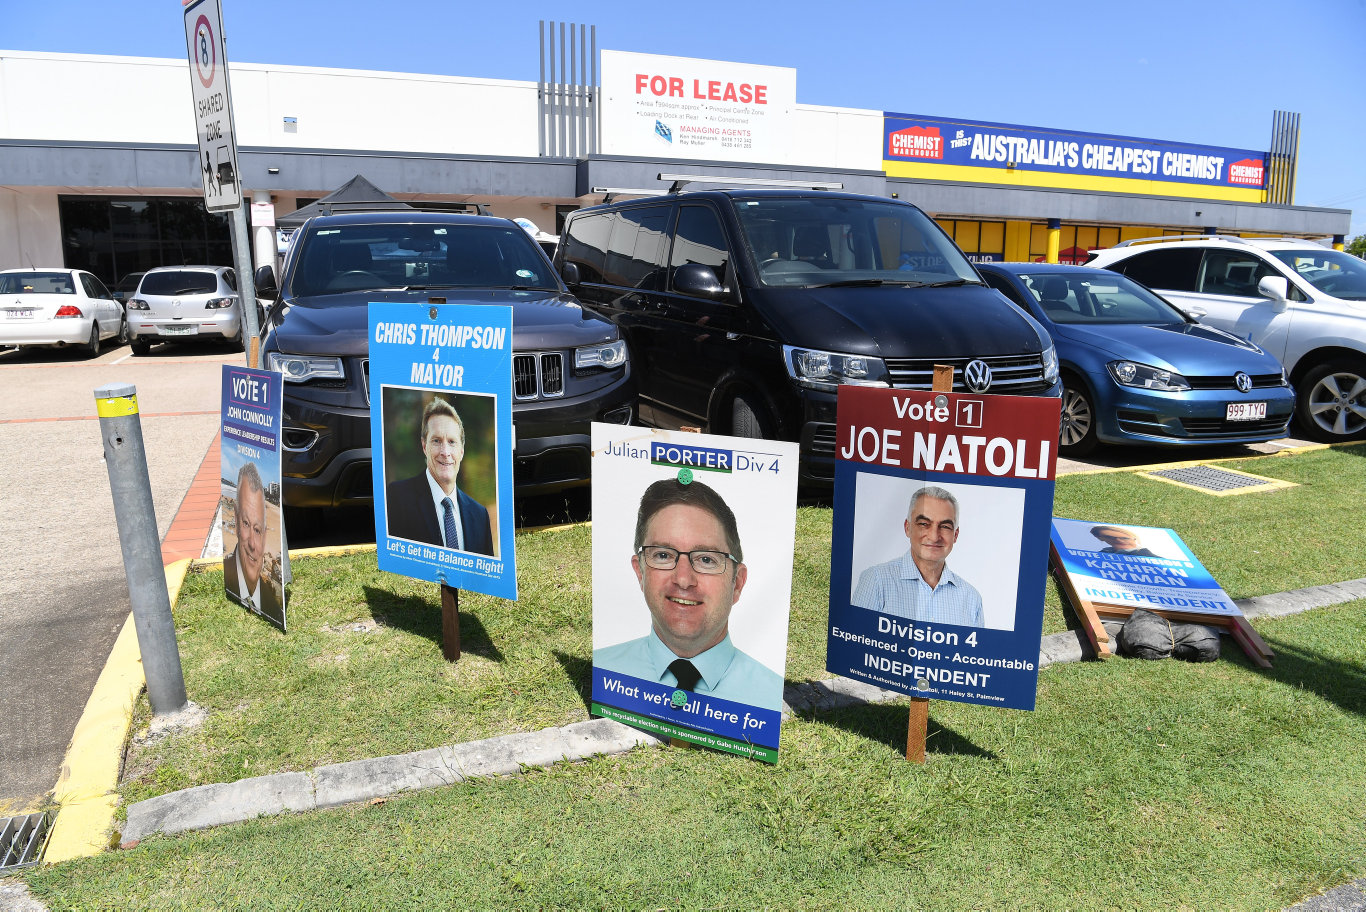 Early voting has opened for the Sunshine Coast Council elections.